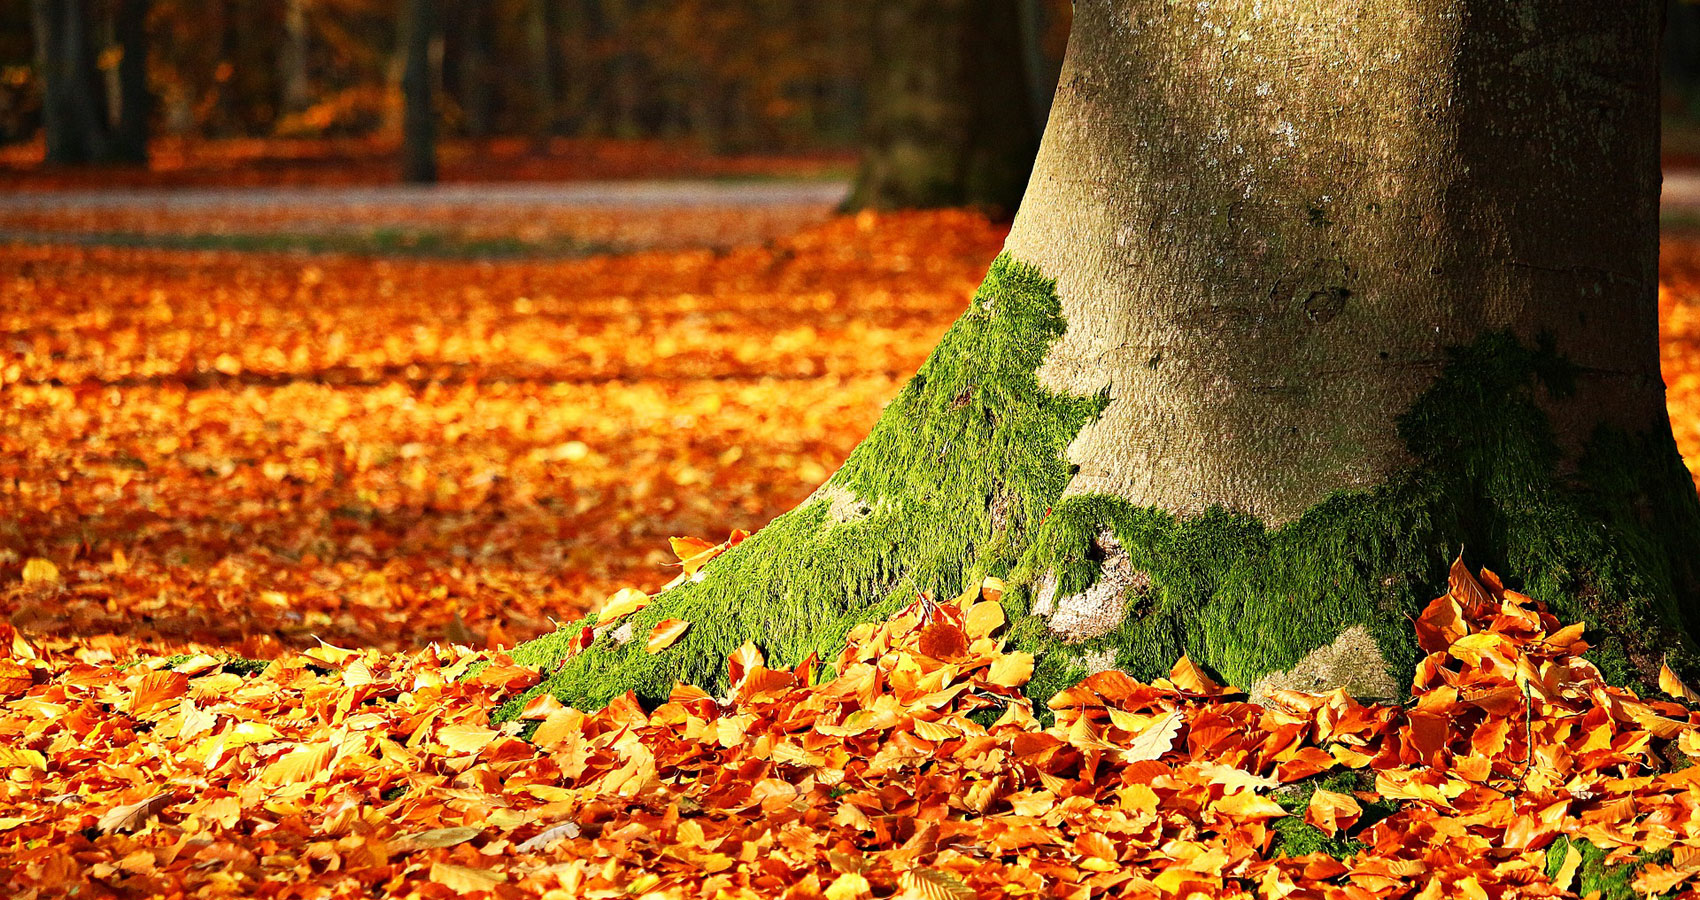 Autumn On The Tree Of Life, written by Aaron Marchant at Spillwords.com